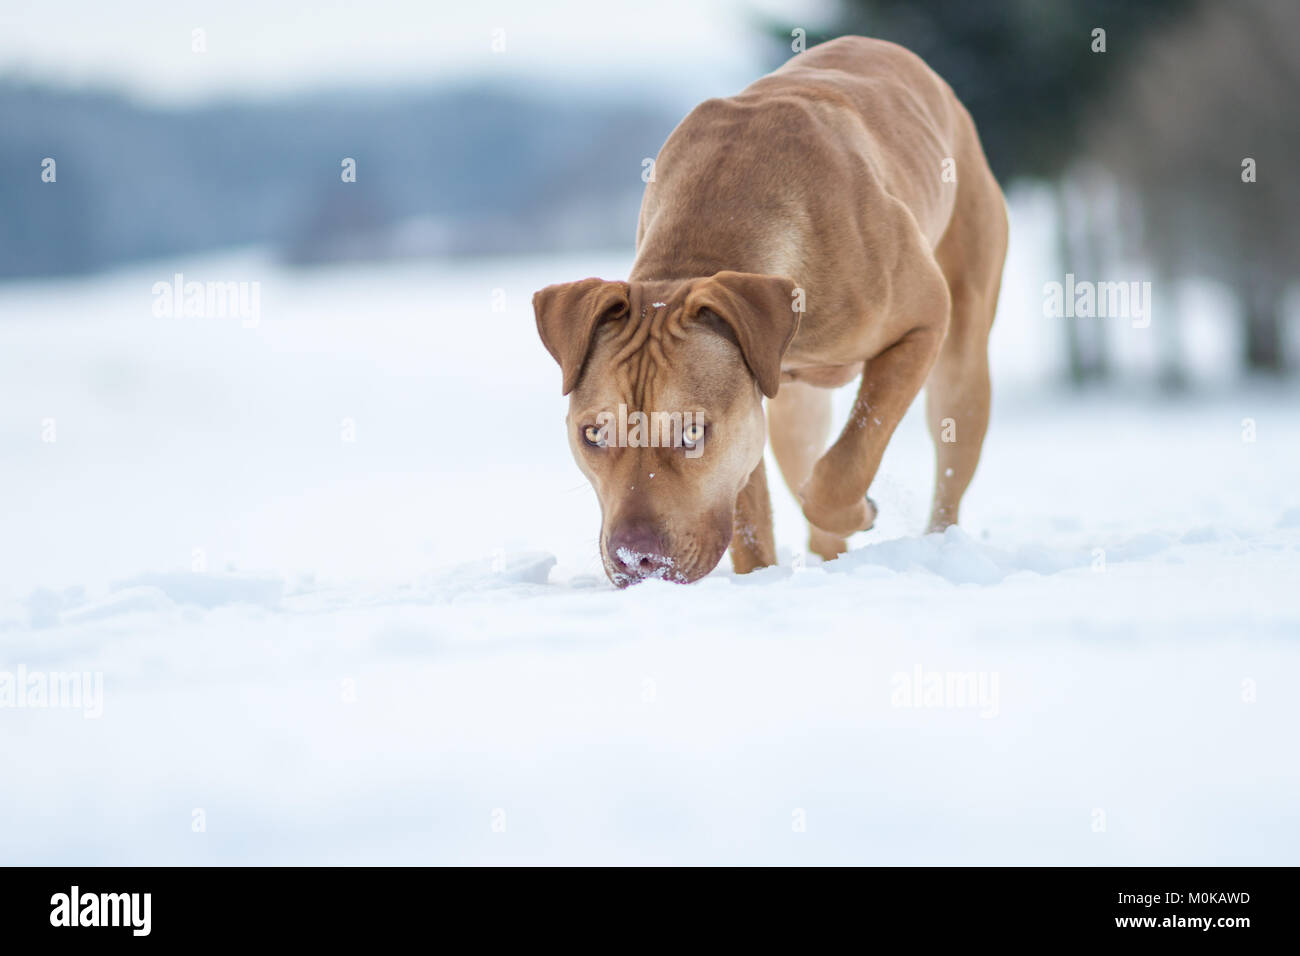 Working Pit Bulldog walking and sniffing in the snow - Stock Image